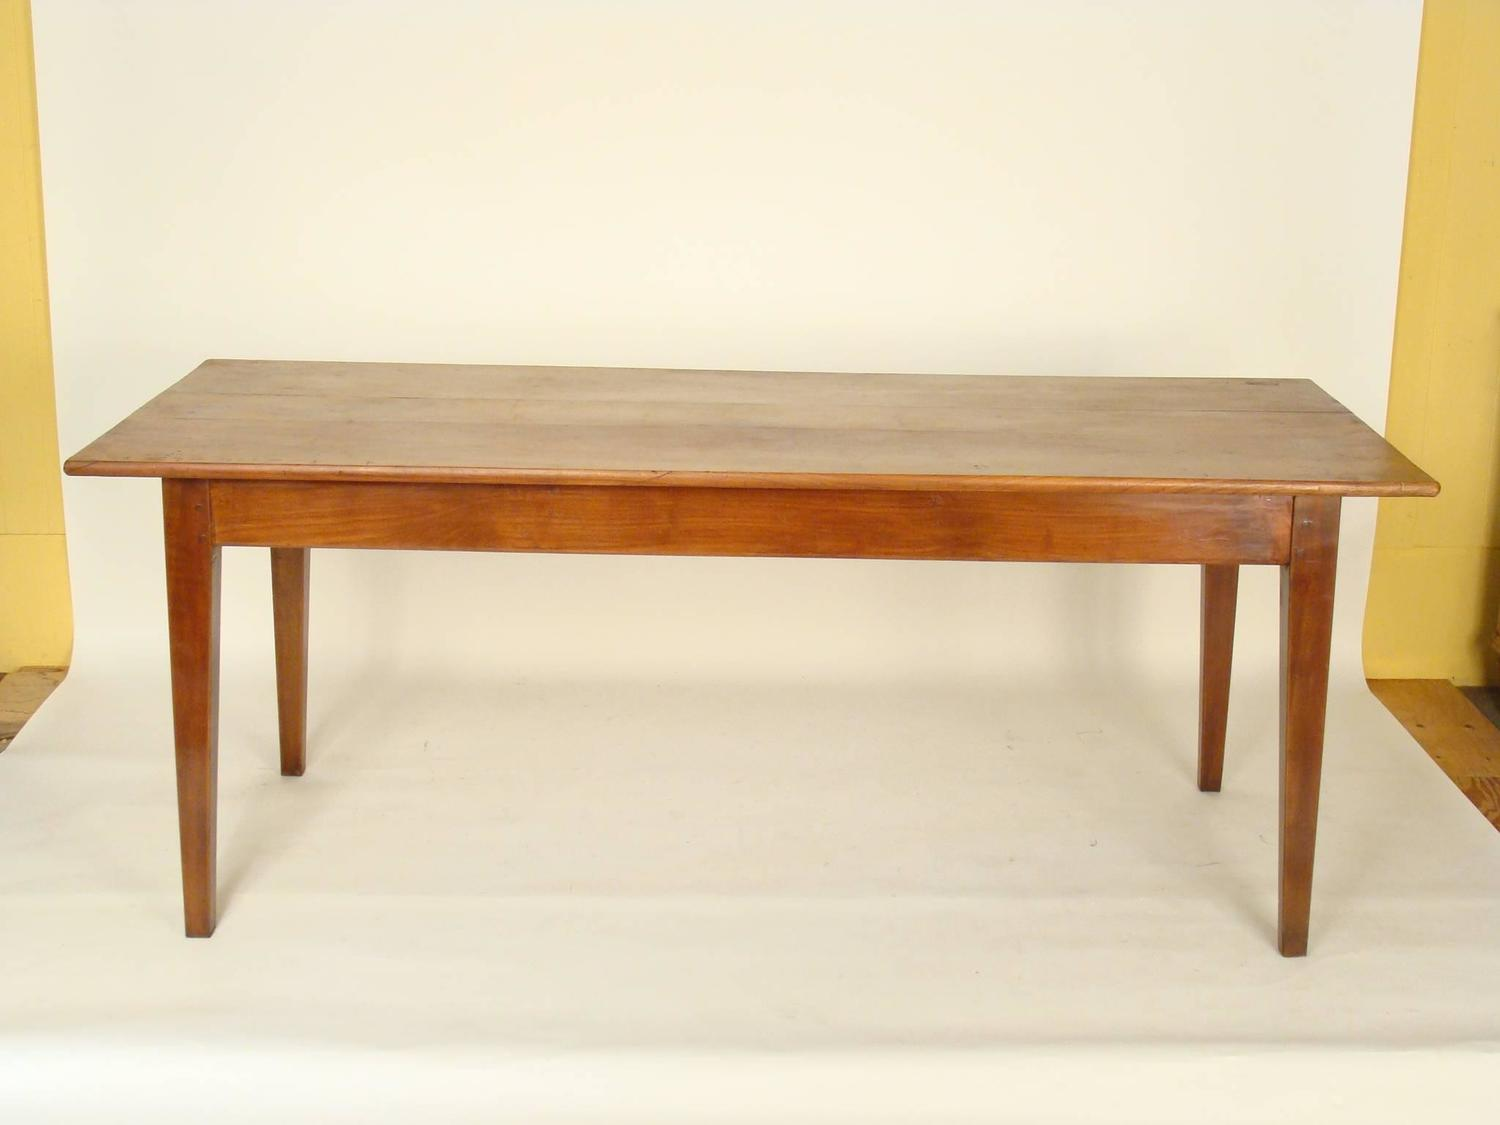 Louis XVI Style Dining Room Table at 1stdibs : DSC07893z from www.1stdibs.com size 1500 x 1125 jpeg 59kB